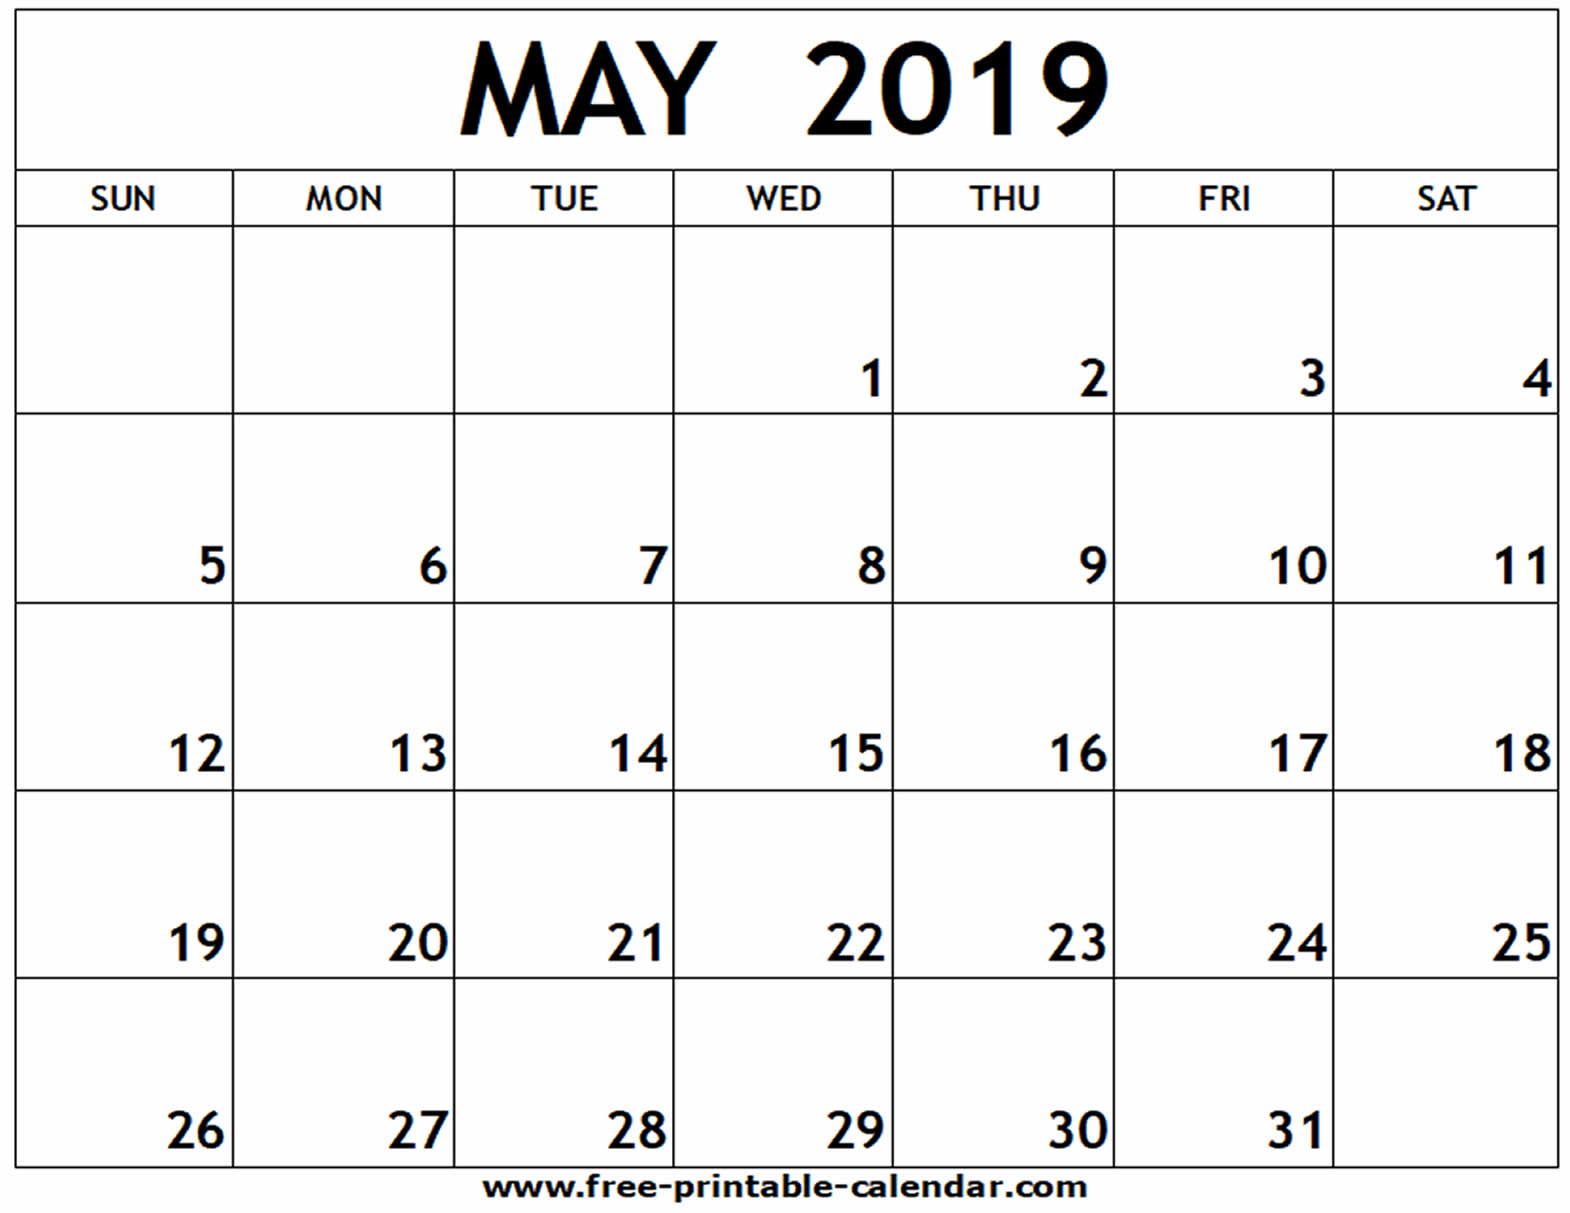 Print May 2019 Calendar PDF, Word, Excel Template